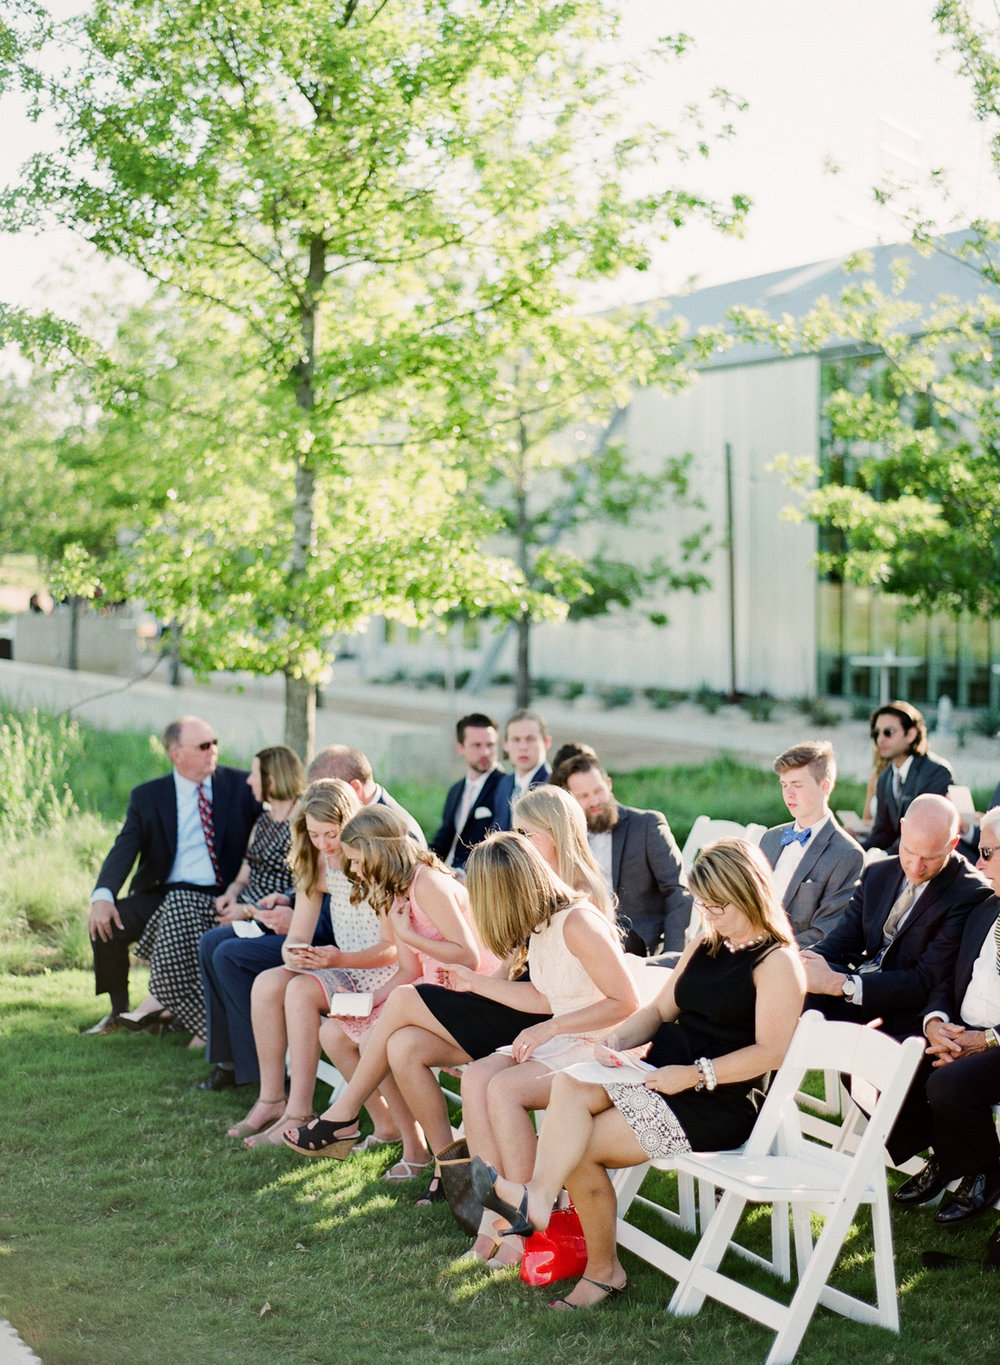 PROSPECT_HOUSE_WEDDING_AUSTIN_TX_BY_MATTHEW_MOORE_PHOTOGRAPHY_00329.jpg